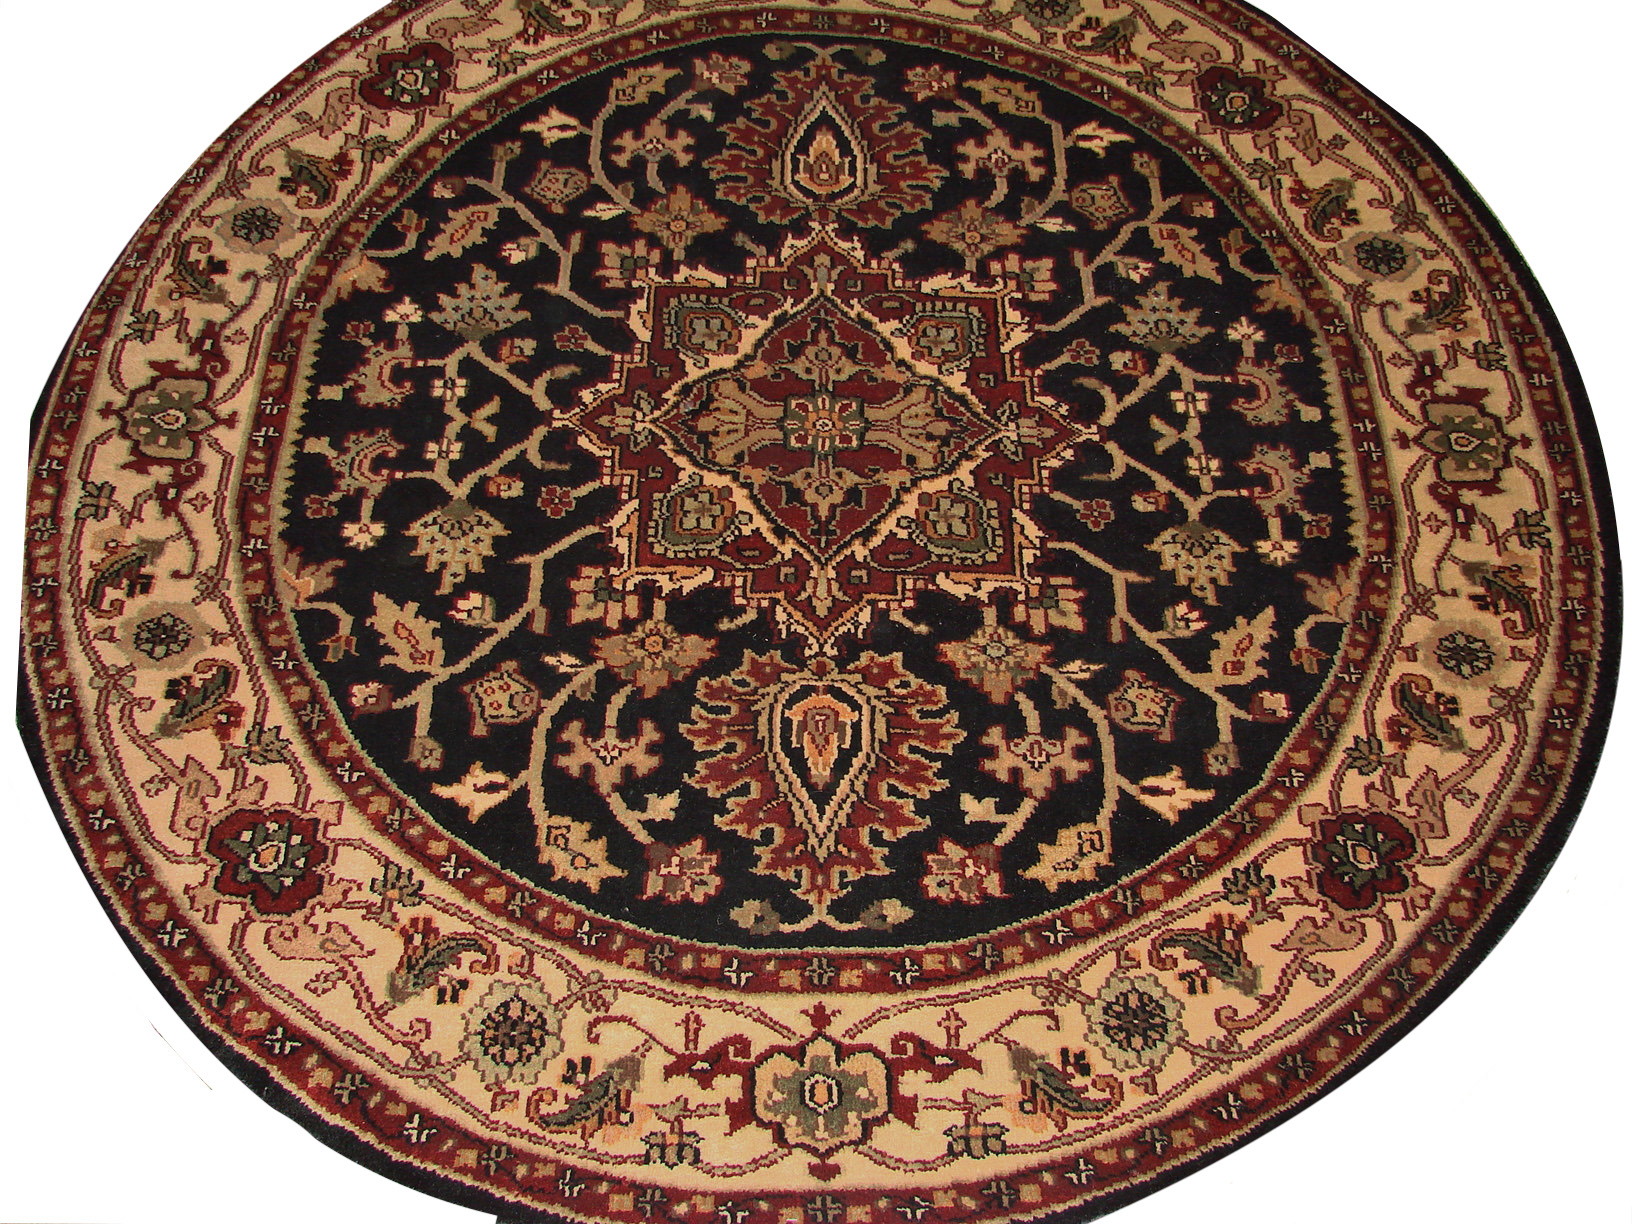 6 ft. - 7 ft. Round & Square Heriz/Serapi Hand Knotted Wool Area Rug - MR0883